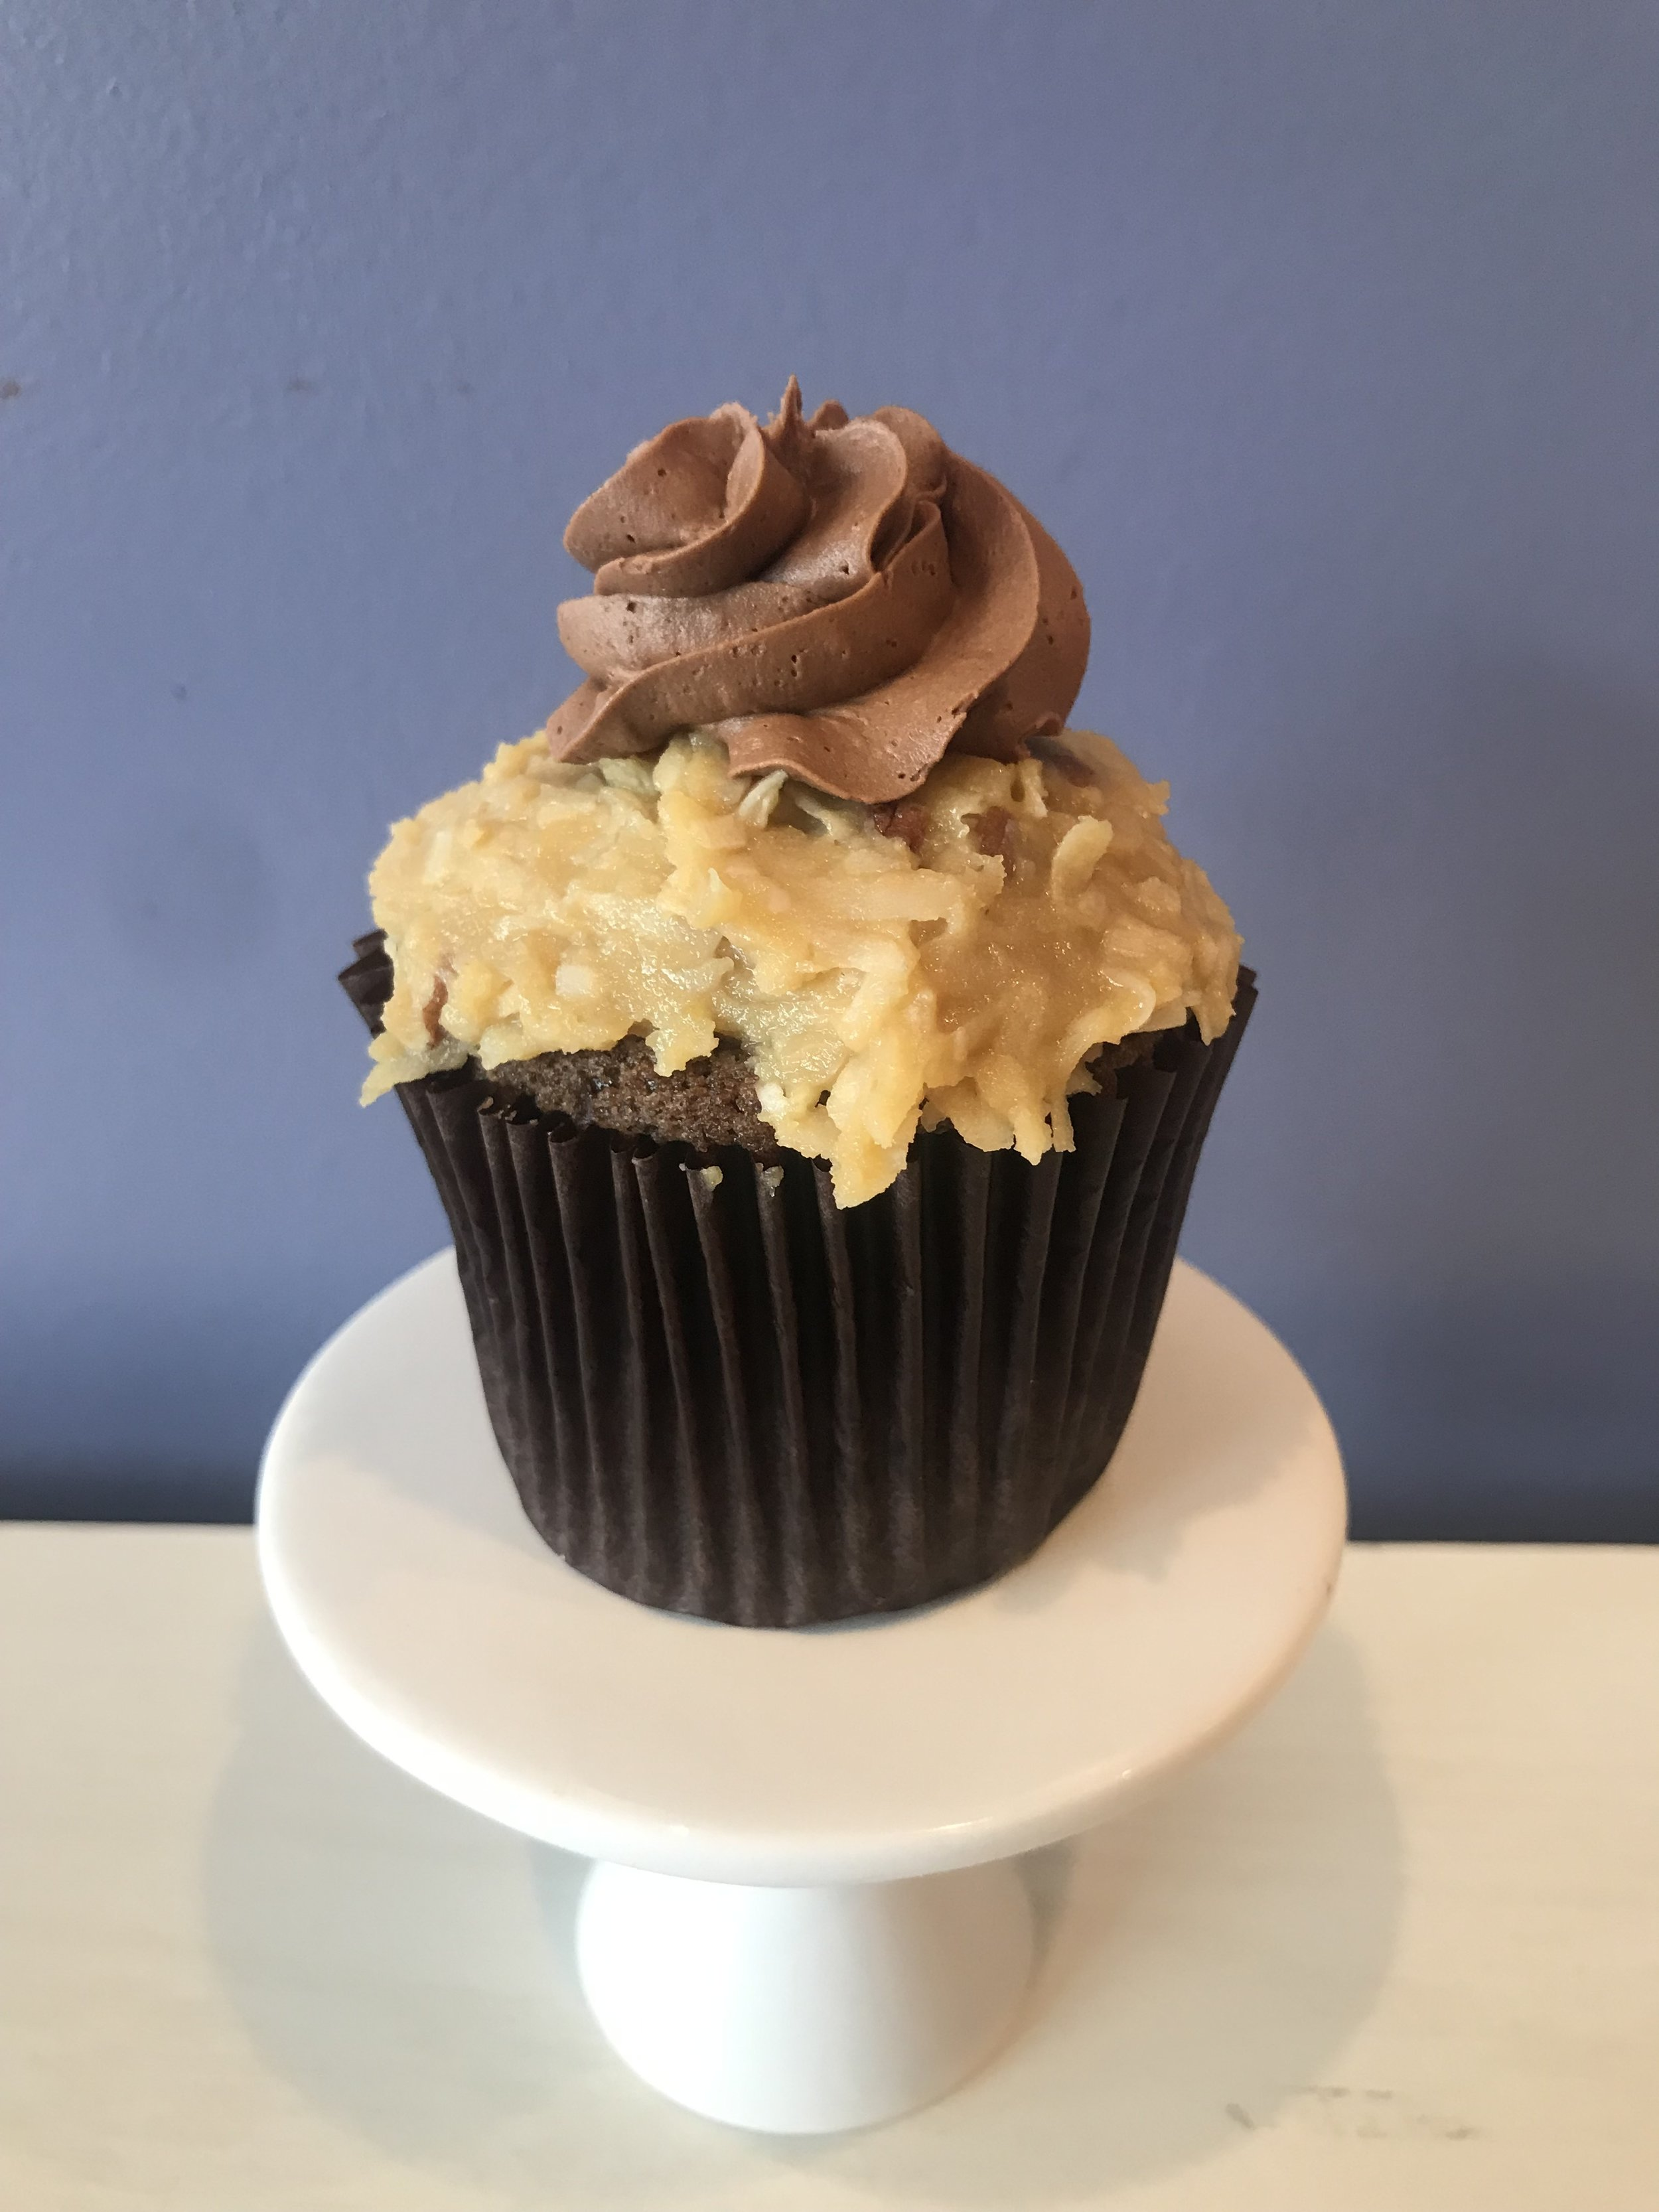 German Chocolate - Chocolate cake with coconut pecan frosting and chocolate buttercream.